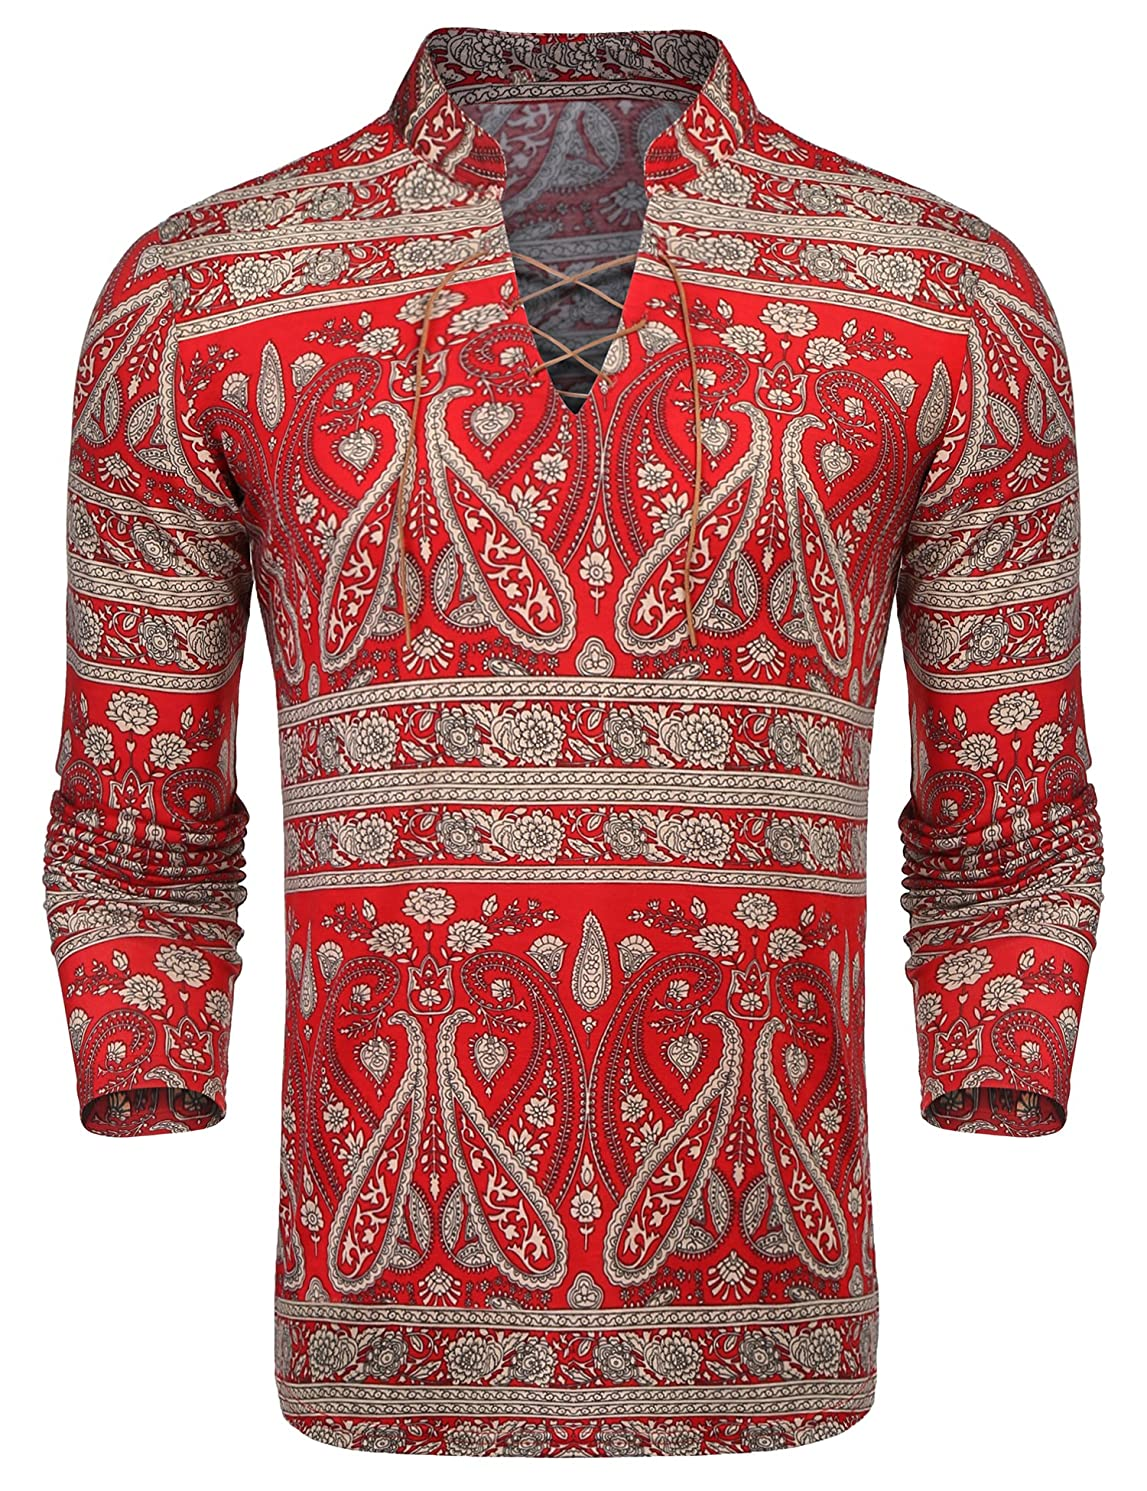 COOFANDY Mens Floral Hippie Shirt Long Sleeve Casual Cotton Paisley Print Lace-Up Henley T Shirt